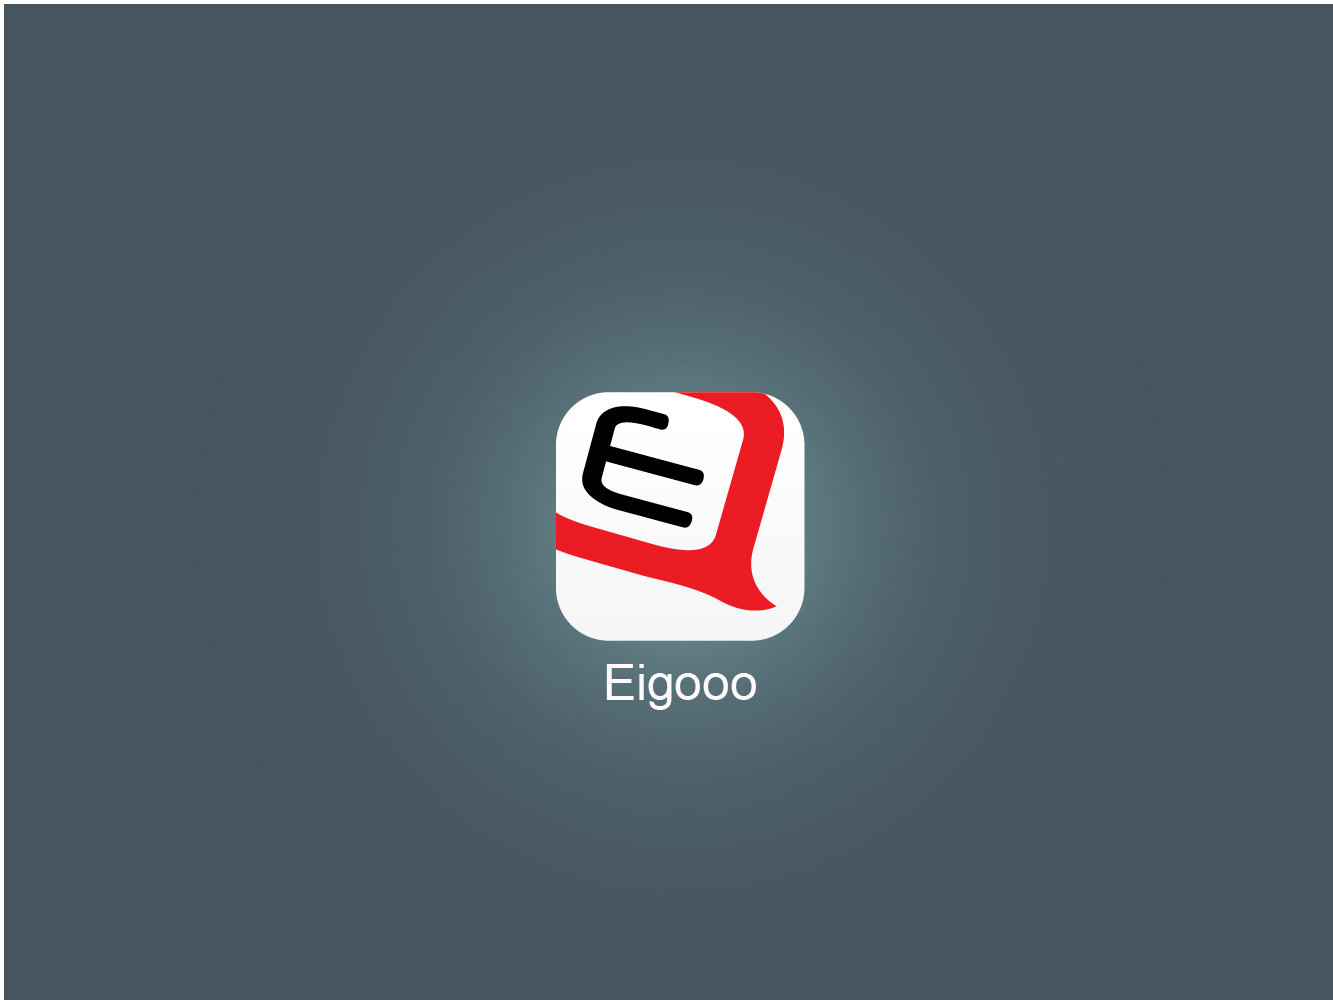 Eigooo_icon_design30-01